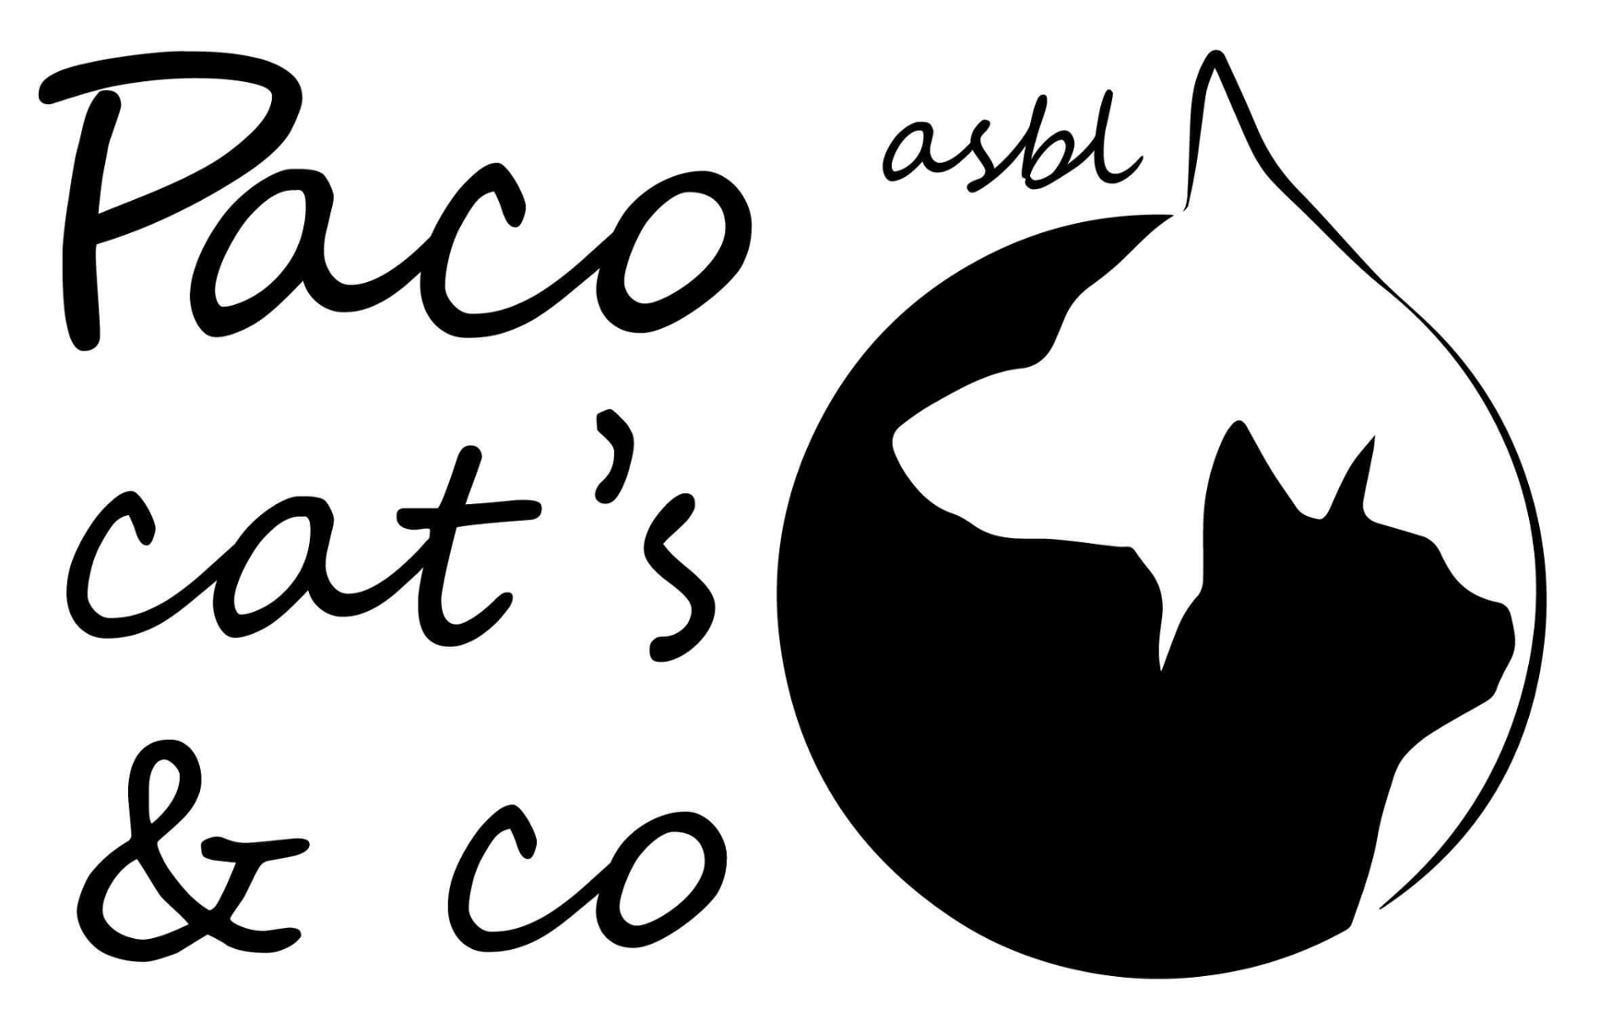 Paco Cats & co